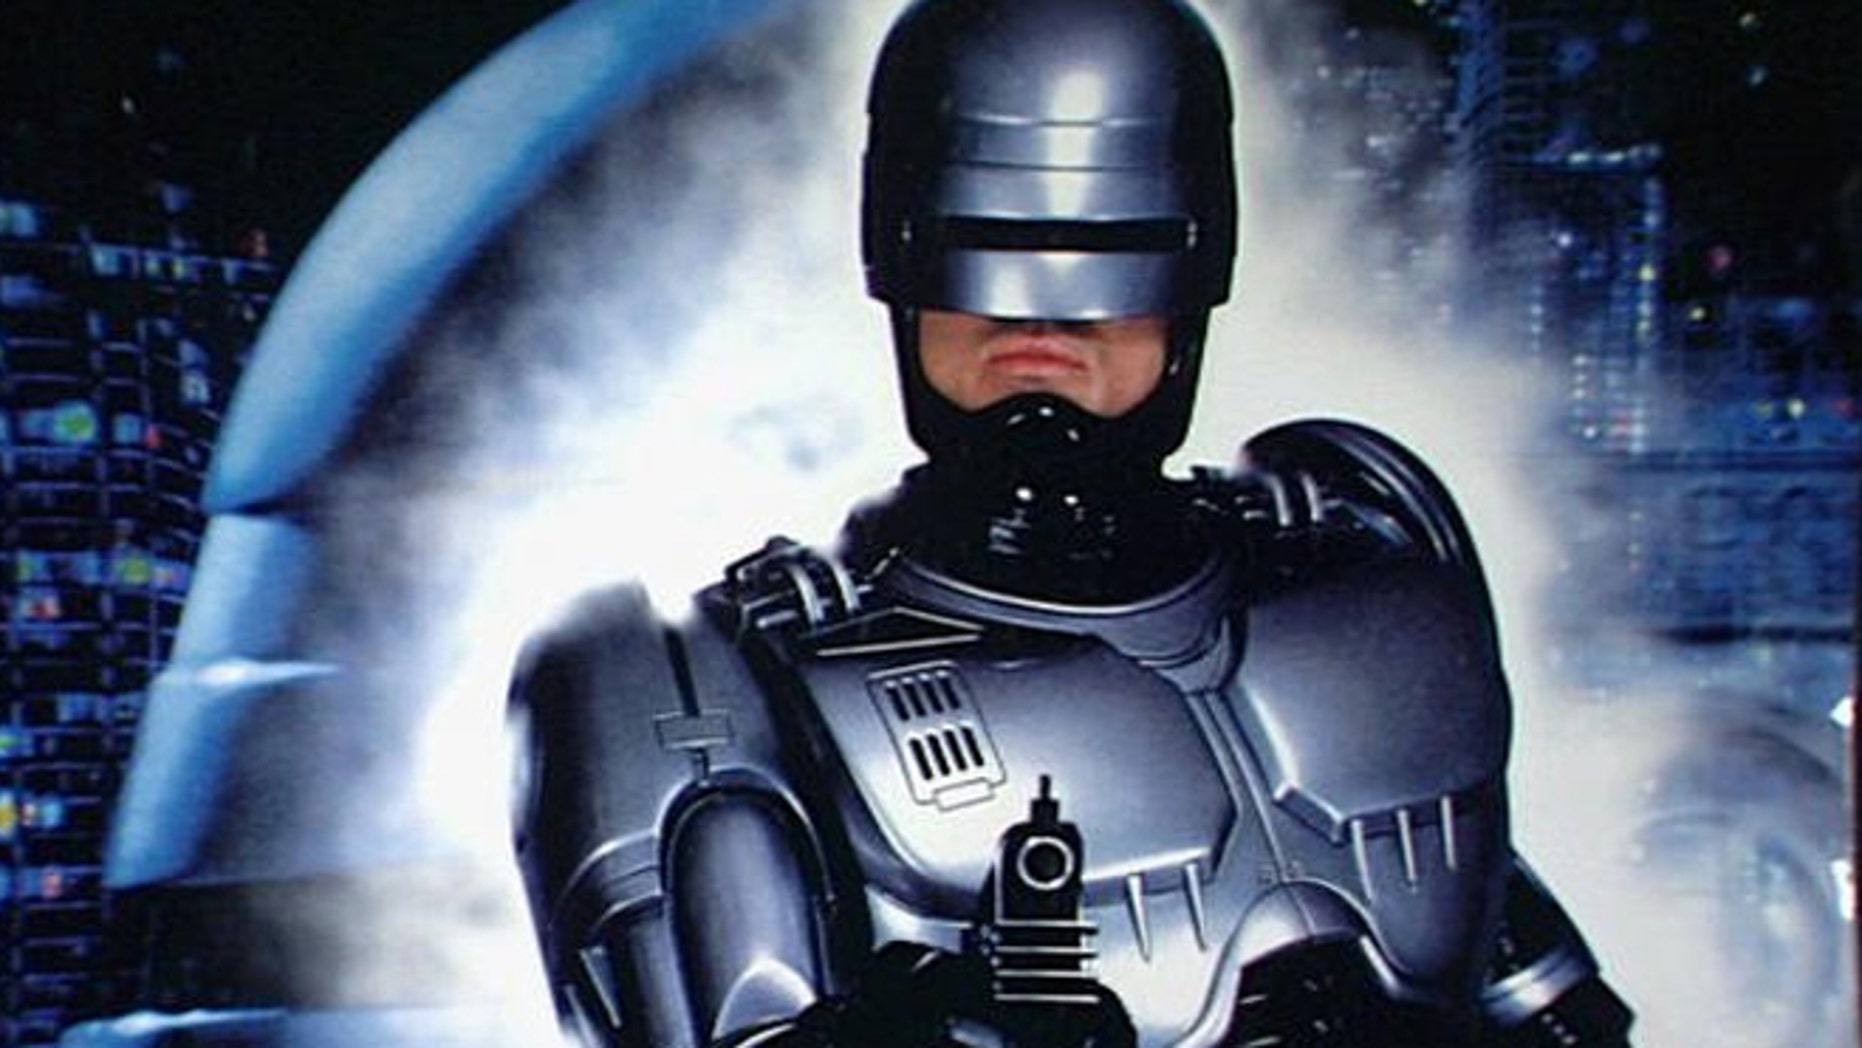 """Although real-life versions of """"RoboCop"""" don't exist, diplomats attending a United Nations meeting in Geneva Tuesday urged the adoption of new international laws that could govern the use of """"killer robots"""" if the technology becomes a reality someday."""